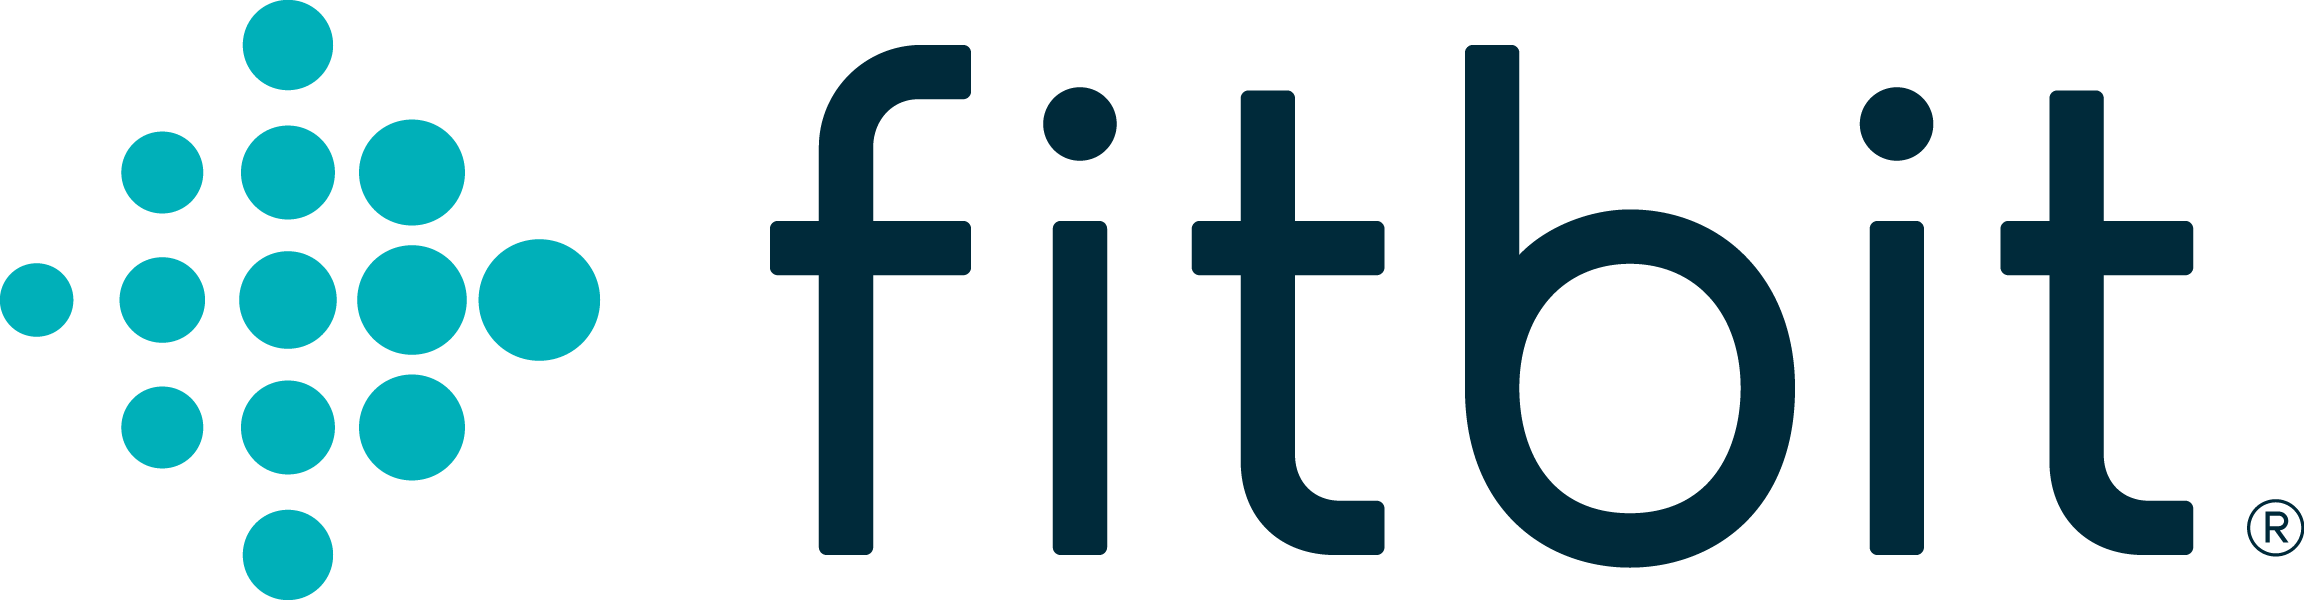 Fitbit are supporting Status Row